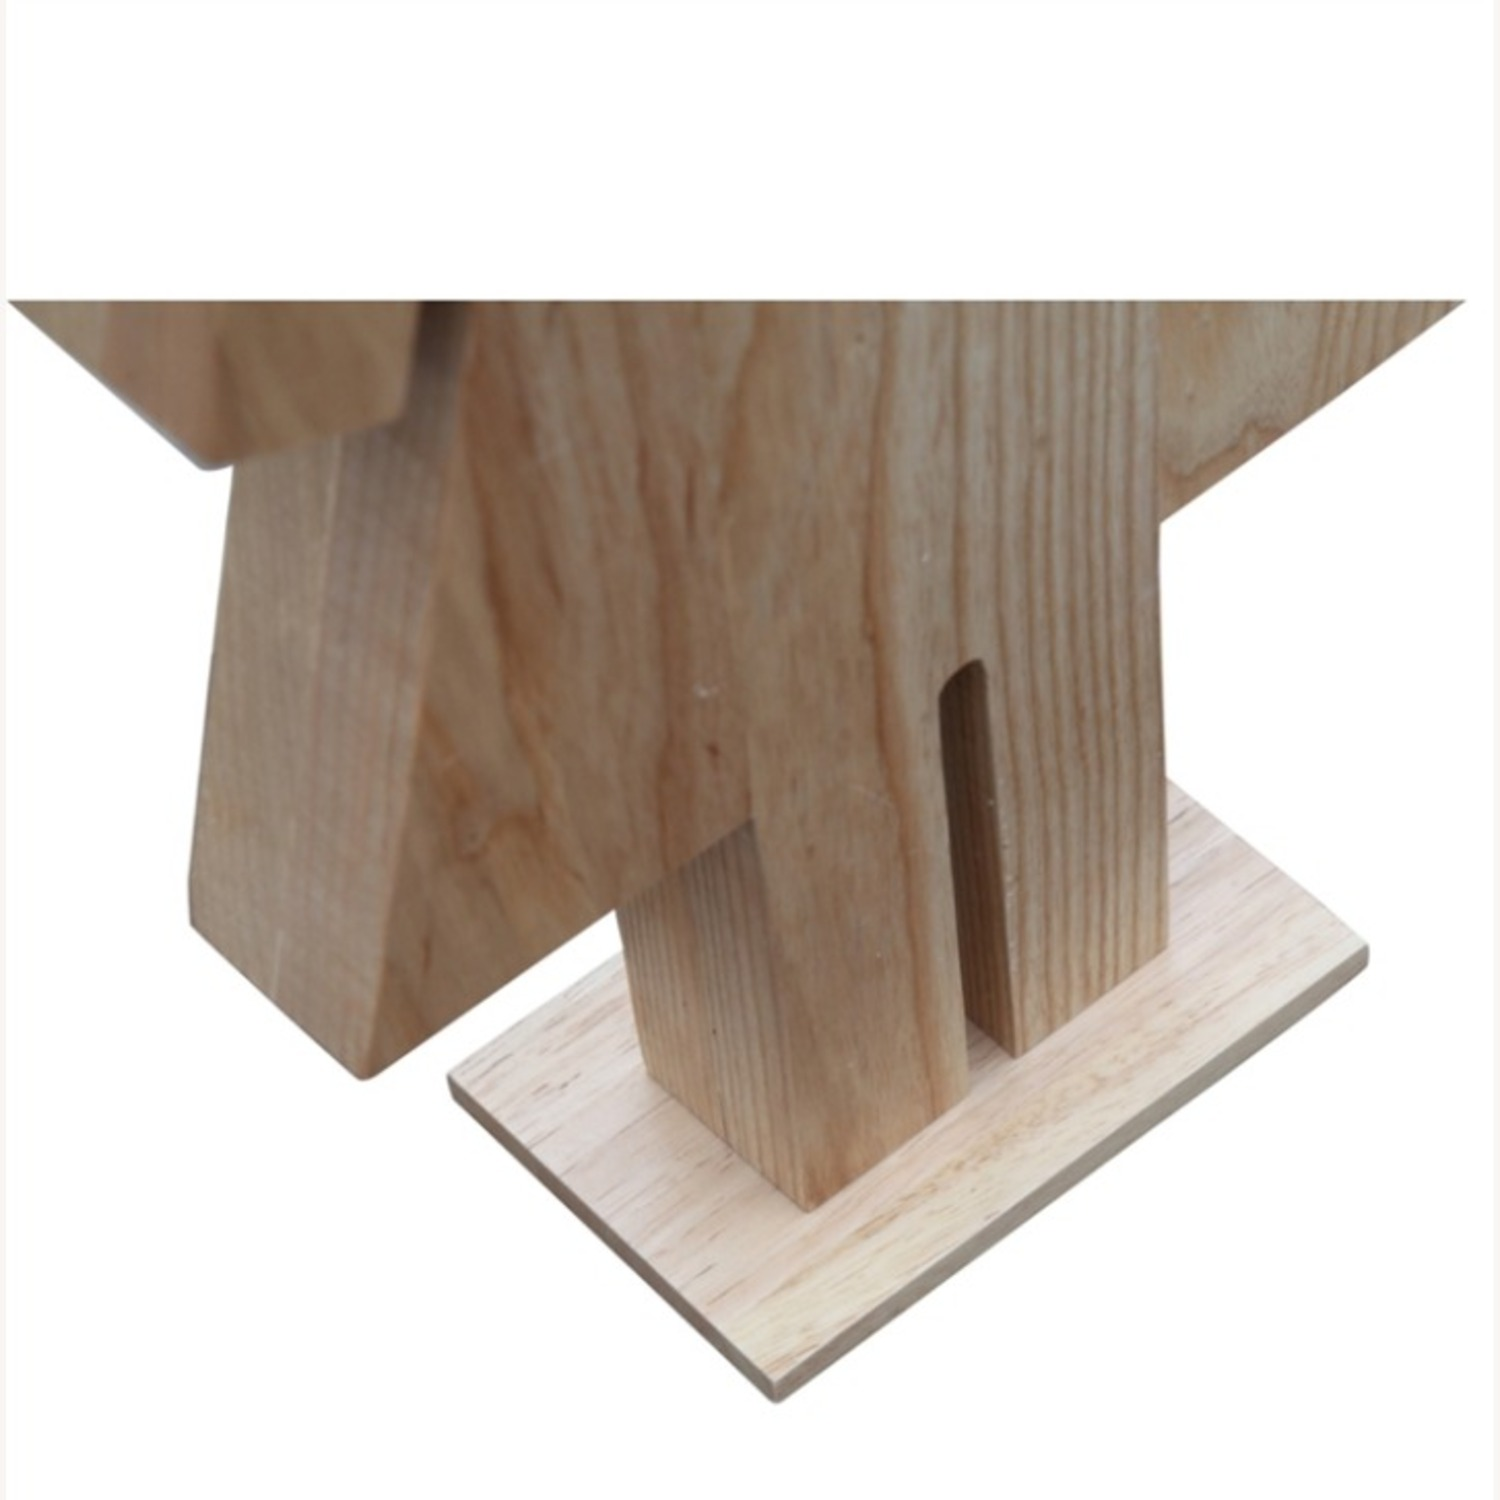 Table Lamp In Natural Wood W/ Female Person Design - image-5